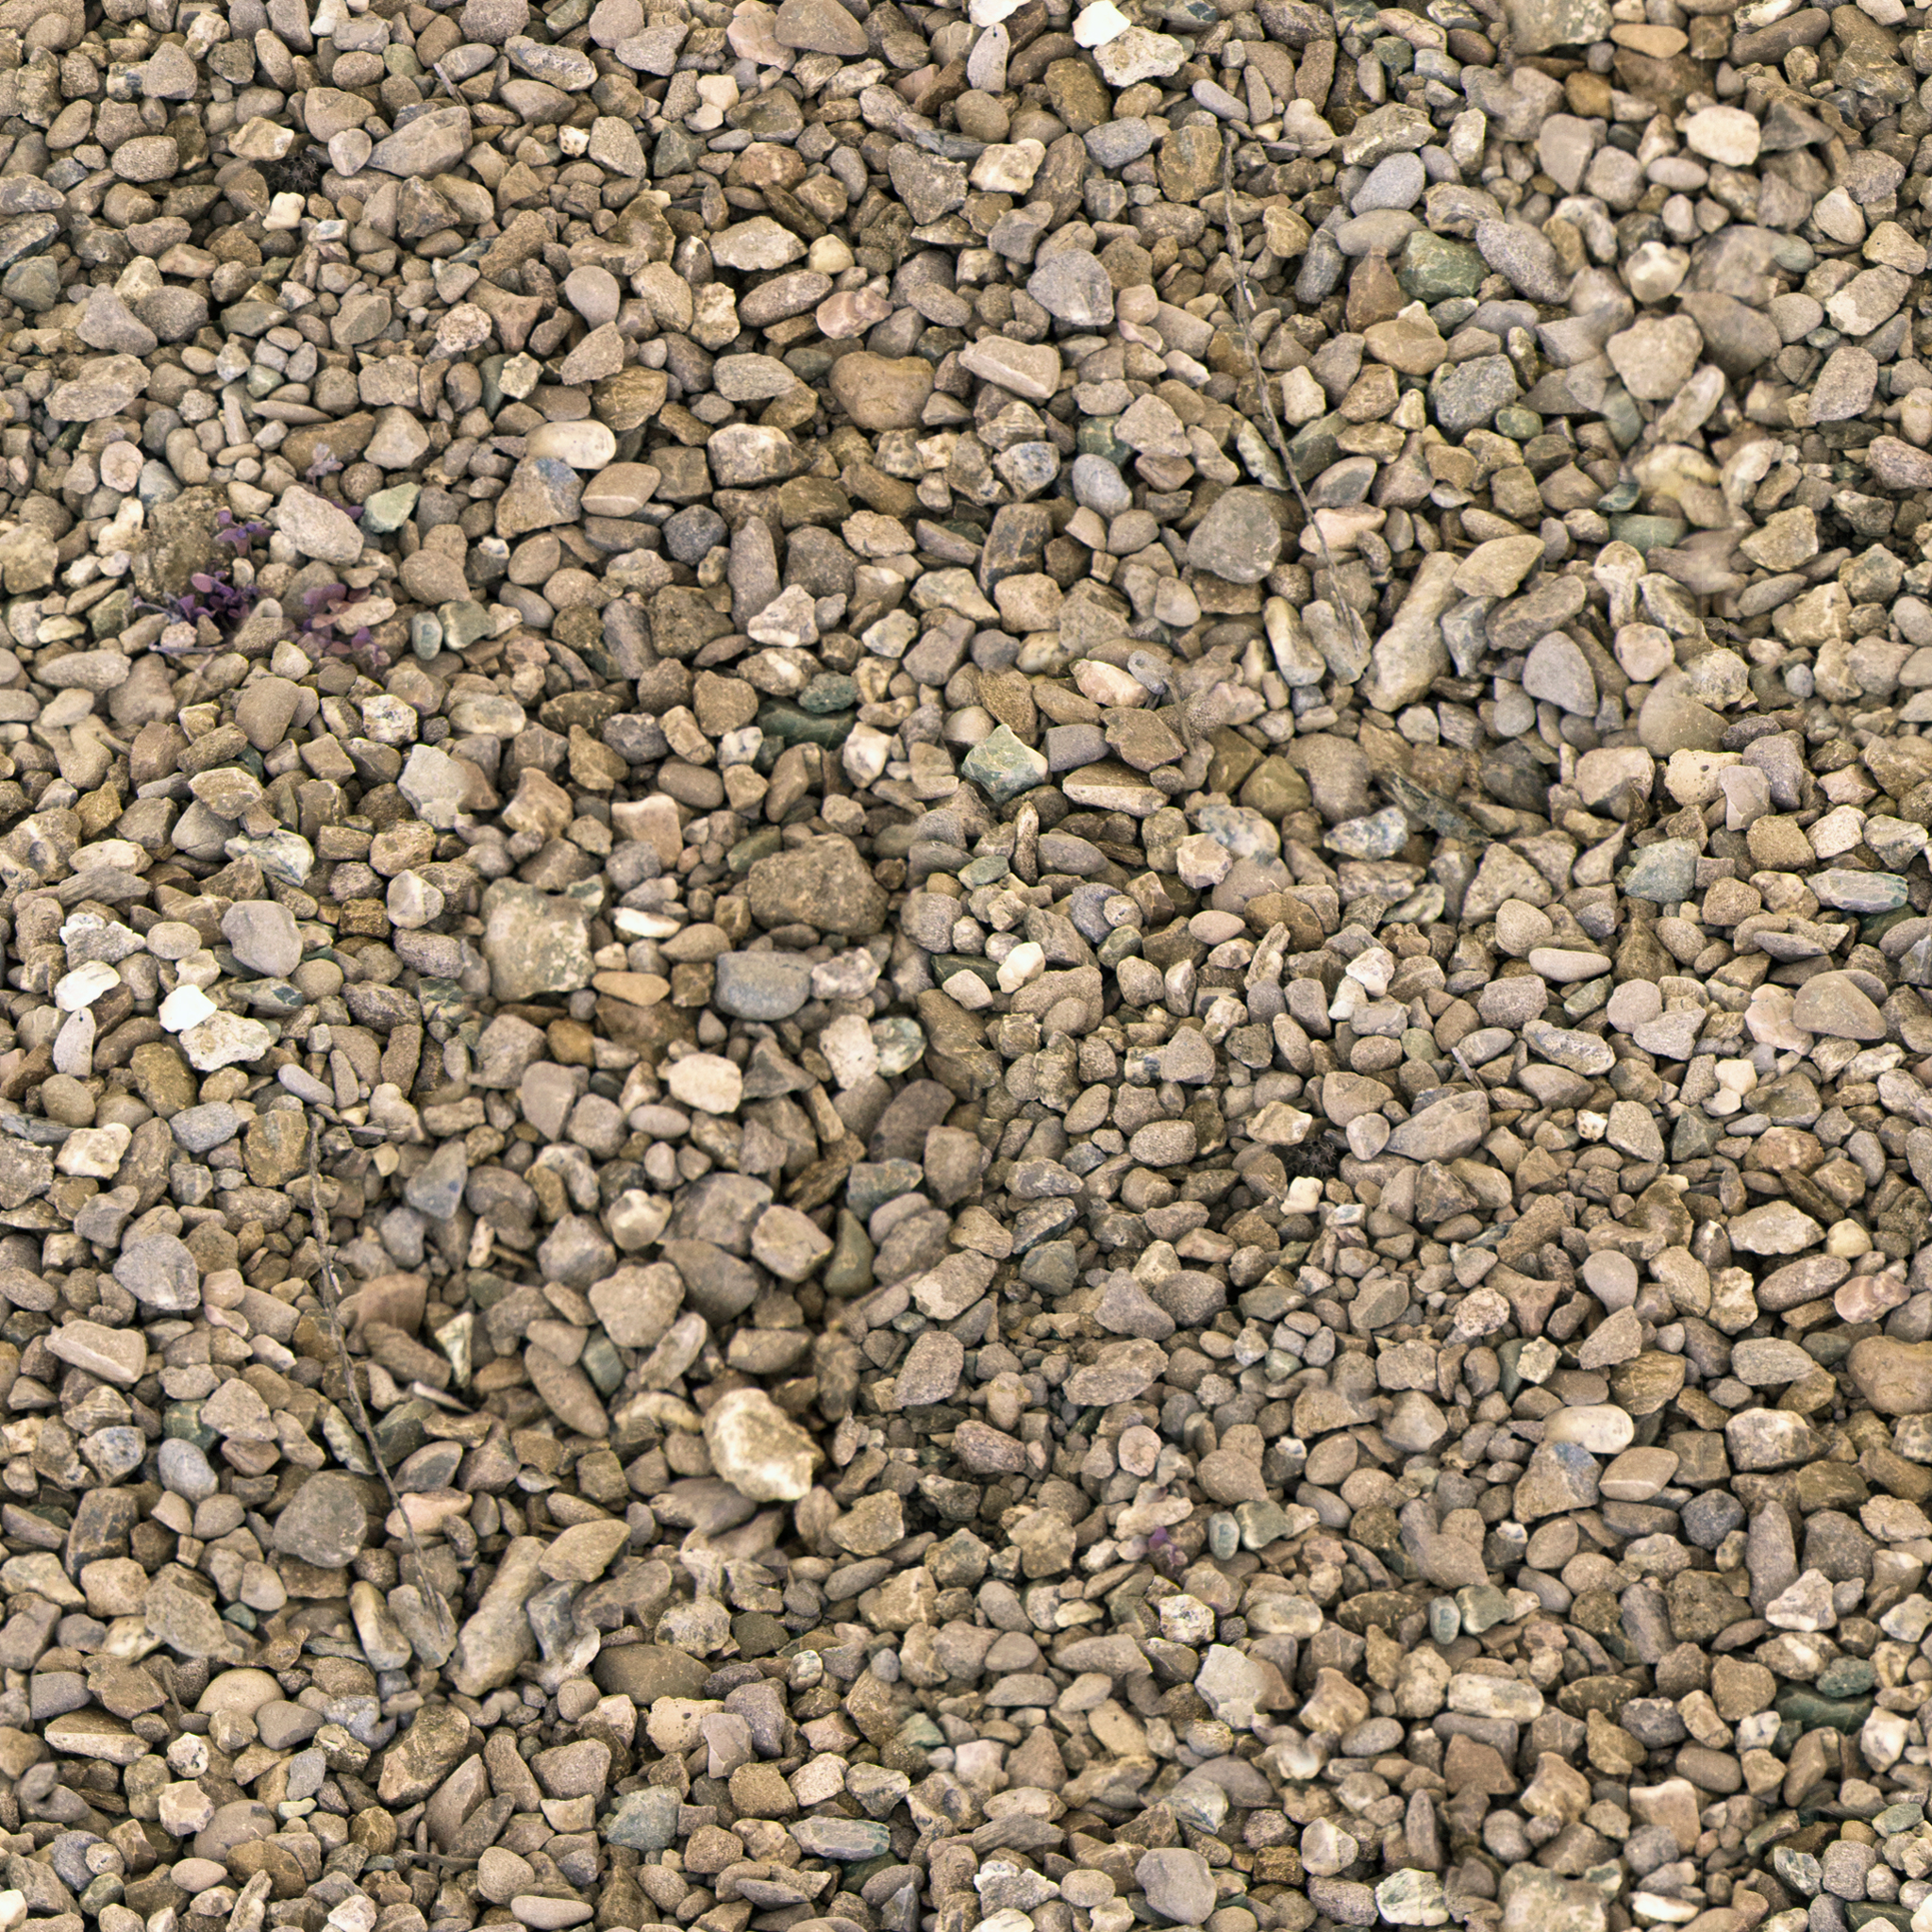 tan-pebbles.jpg